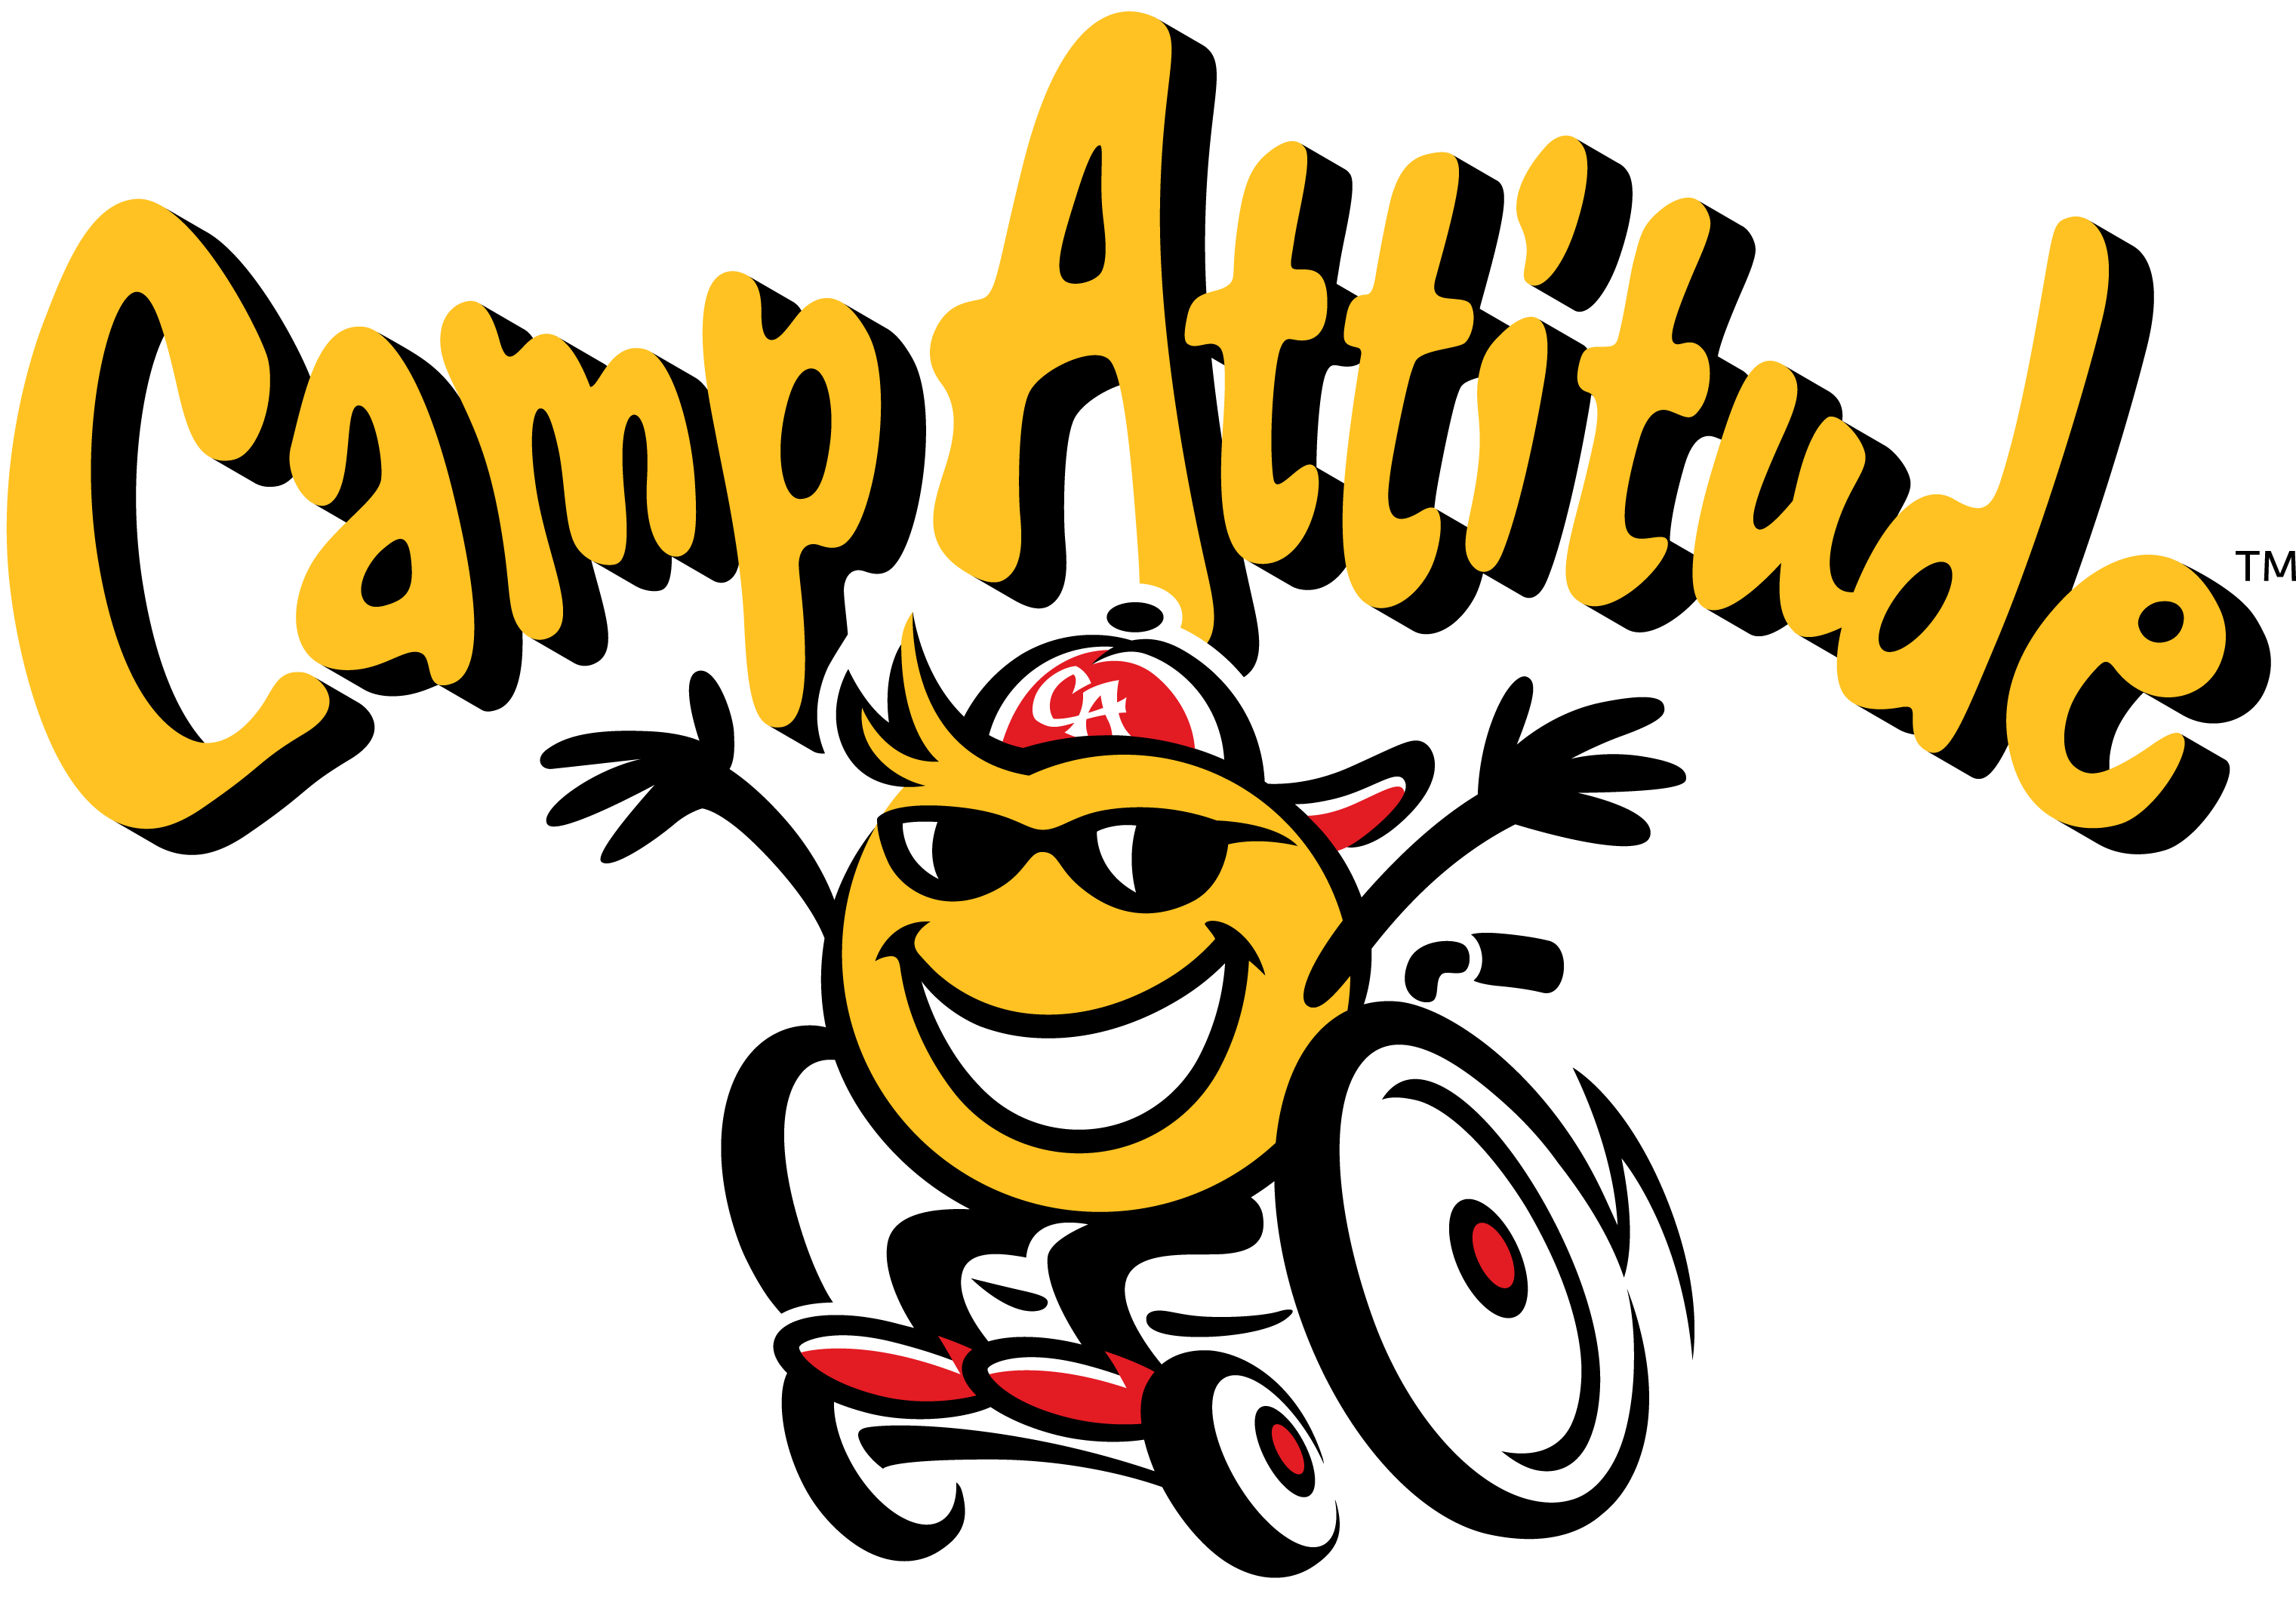 9A Camp Attitude Arched Type with Mascot